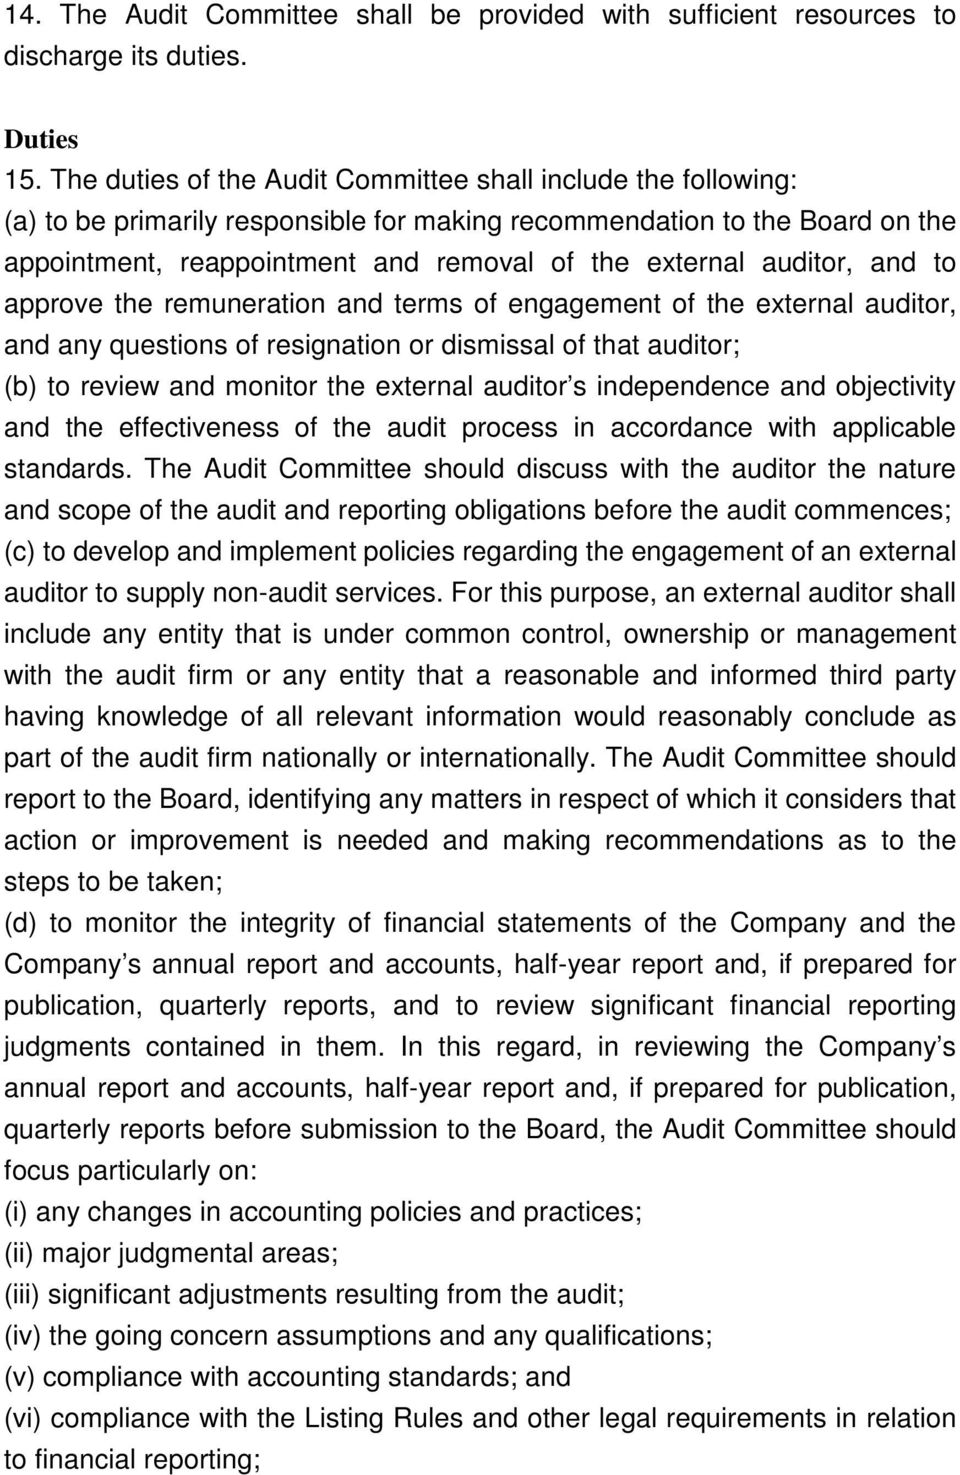 auditor, and to approve the remuneration and terms of engagement of the external auditor, and any questions of resignation or dismissal of that auditor; (b) to review and monitor the external auditor